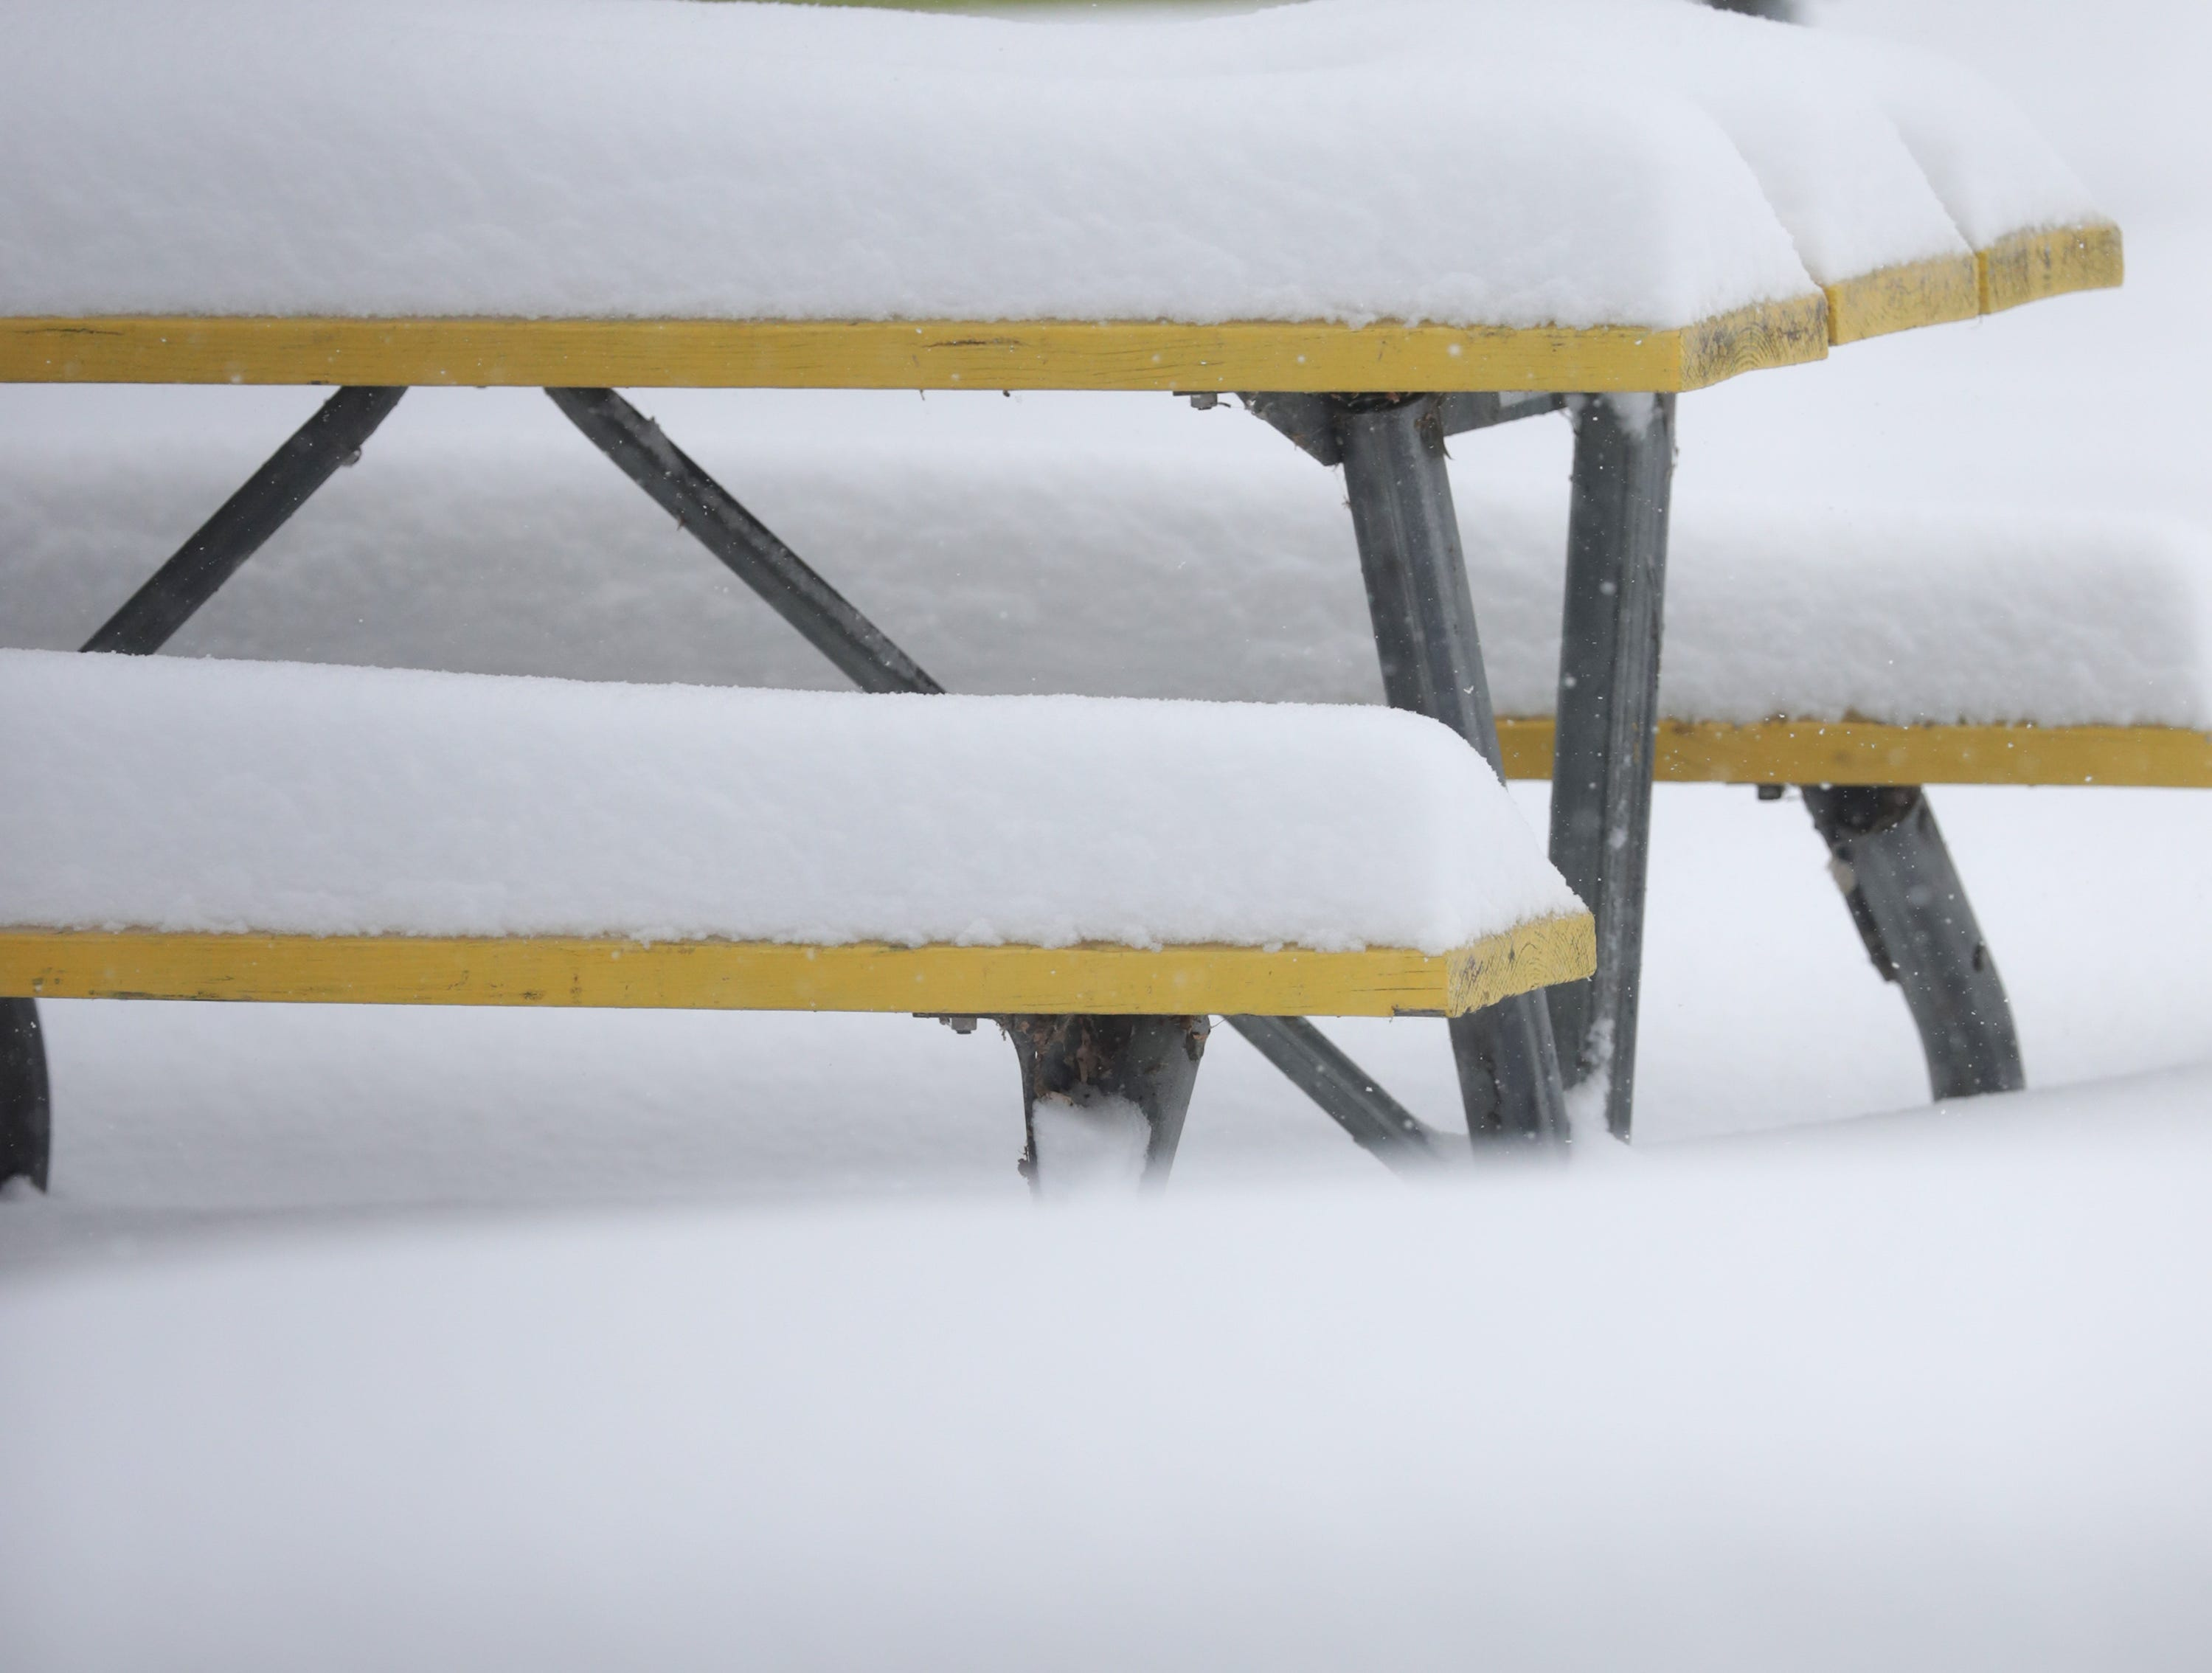 Picnic tables buried in snow on Tuesday, February 12, 2019, at the 1000 Islands Environmental Center in Kaukauna, Wis. The latest snow storm to move through the state dropped several inches of snow overnight, 6 to 12 inches are expected by Tuesday evening.